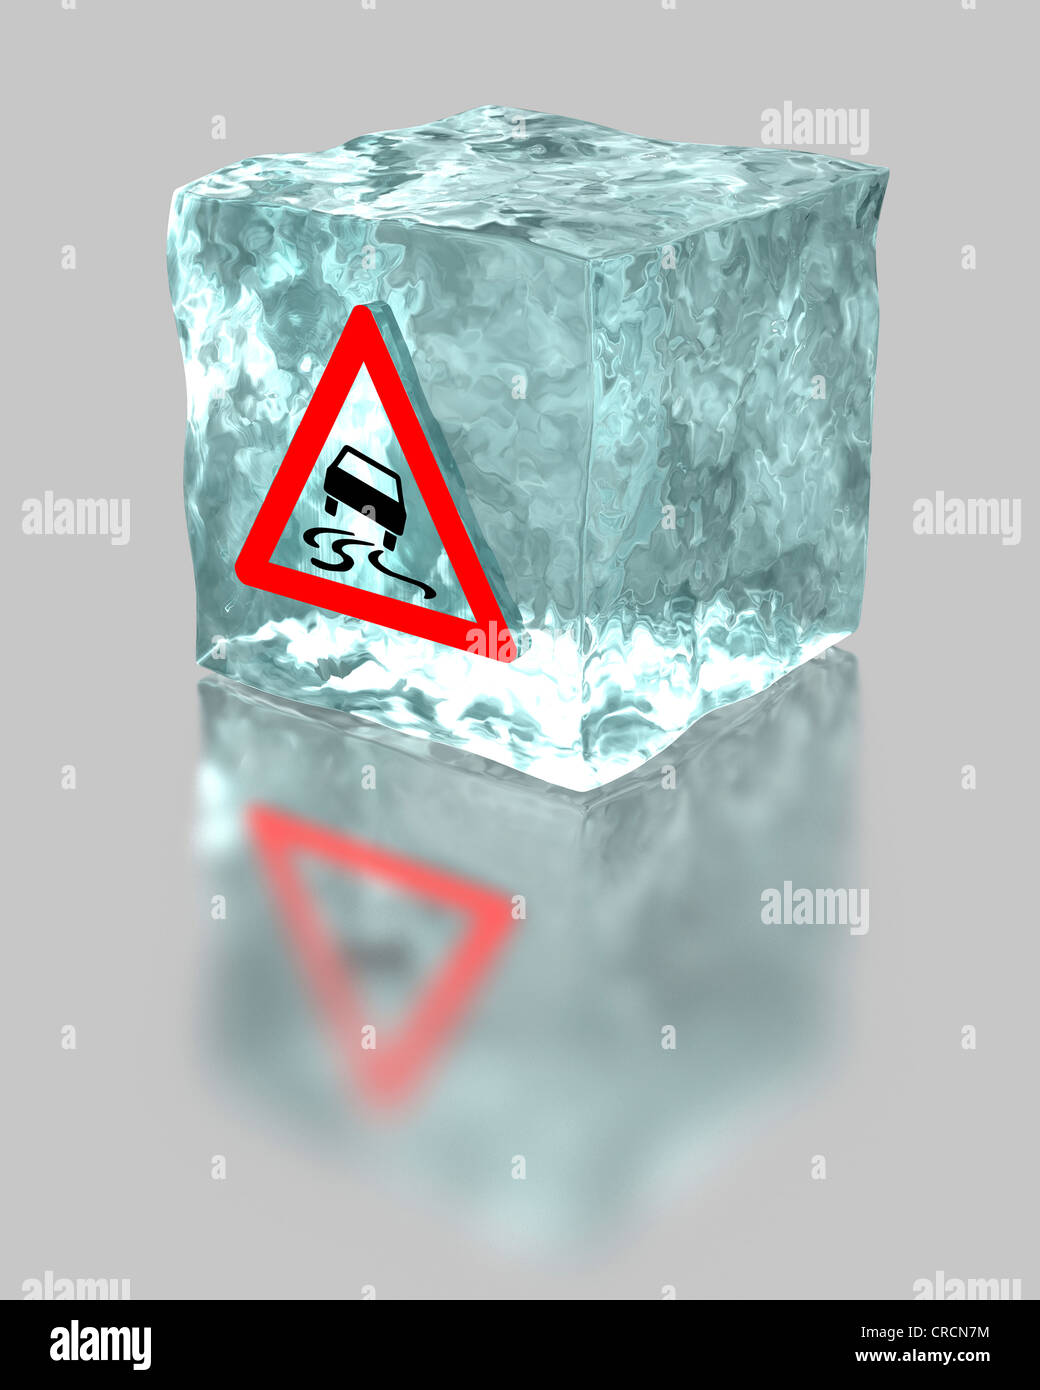 Block of ice with a traffic warning sign for slippery roads, symbolic image for the mandatory use of winter tyres - Stock Image